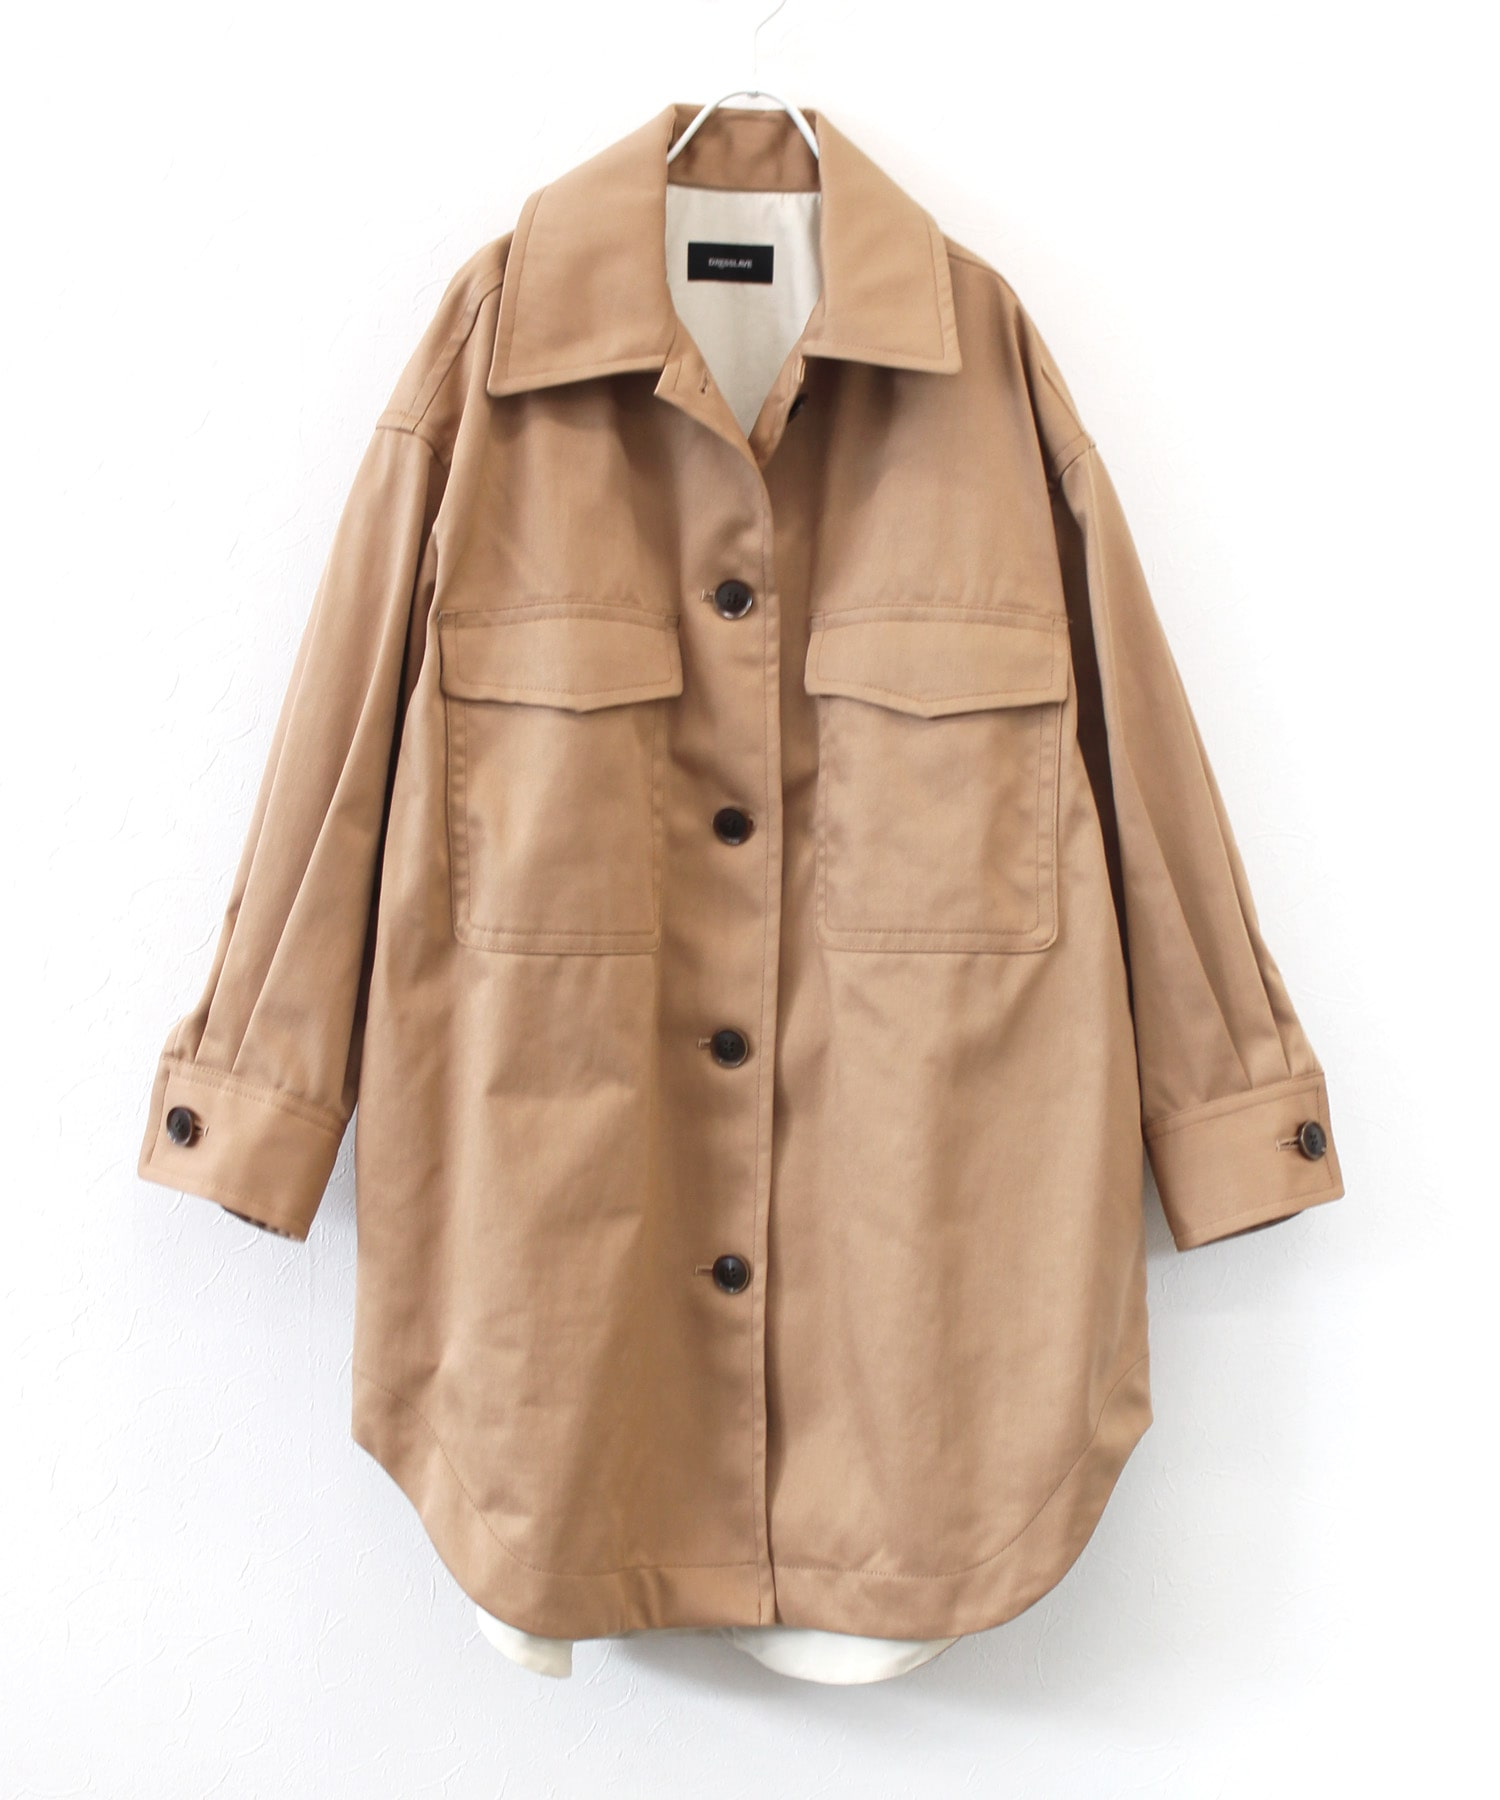 big over shirts spring coat